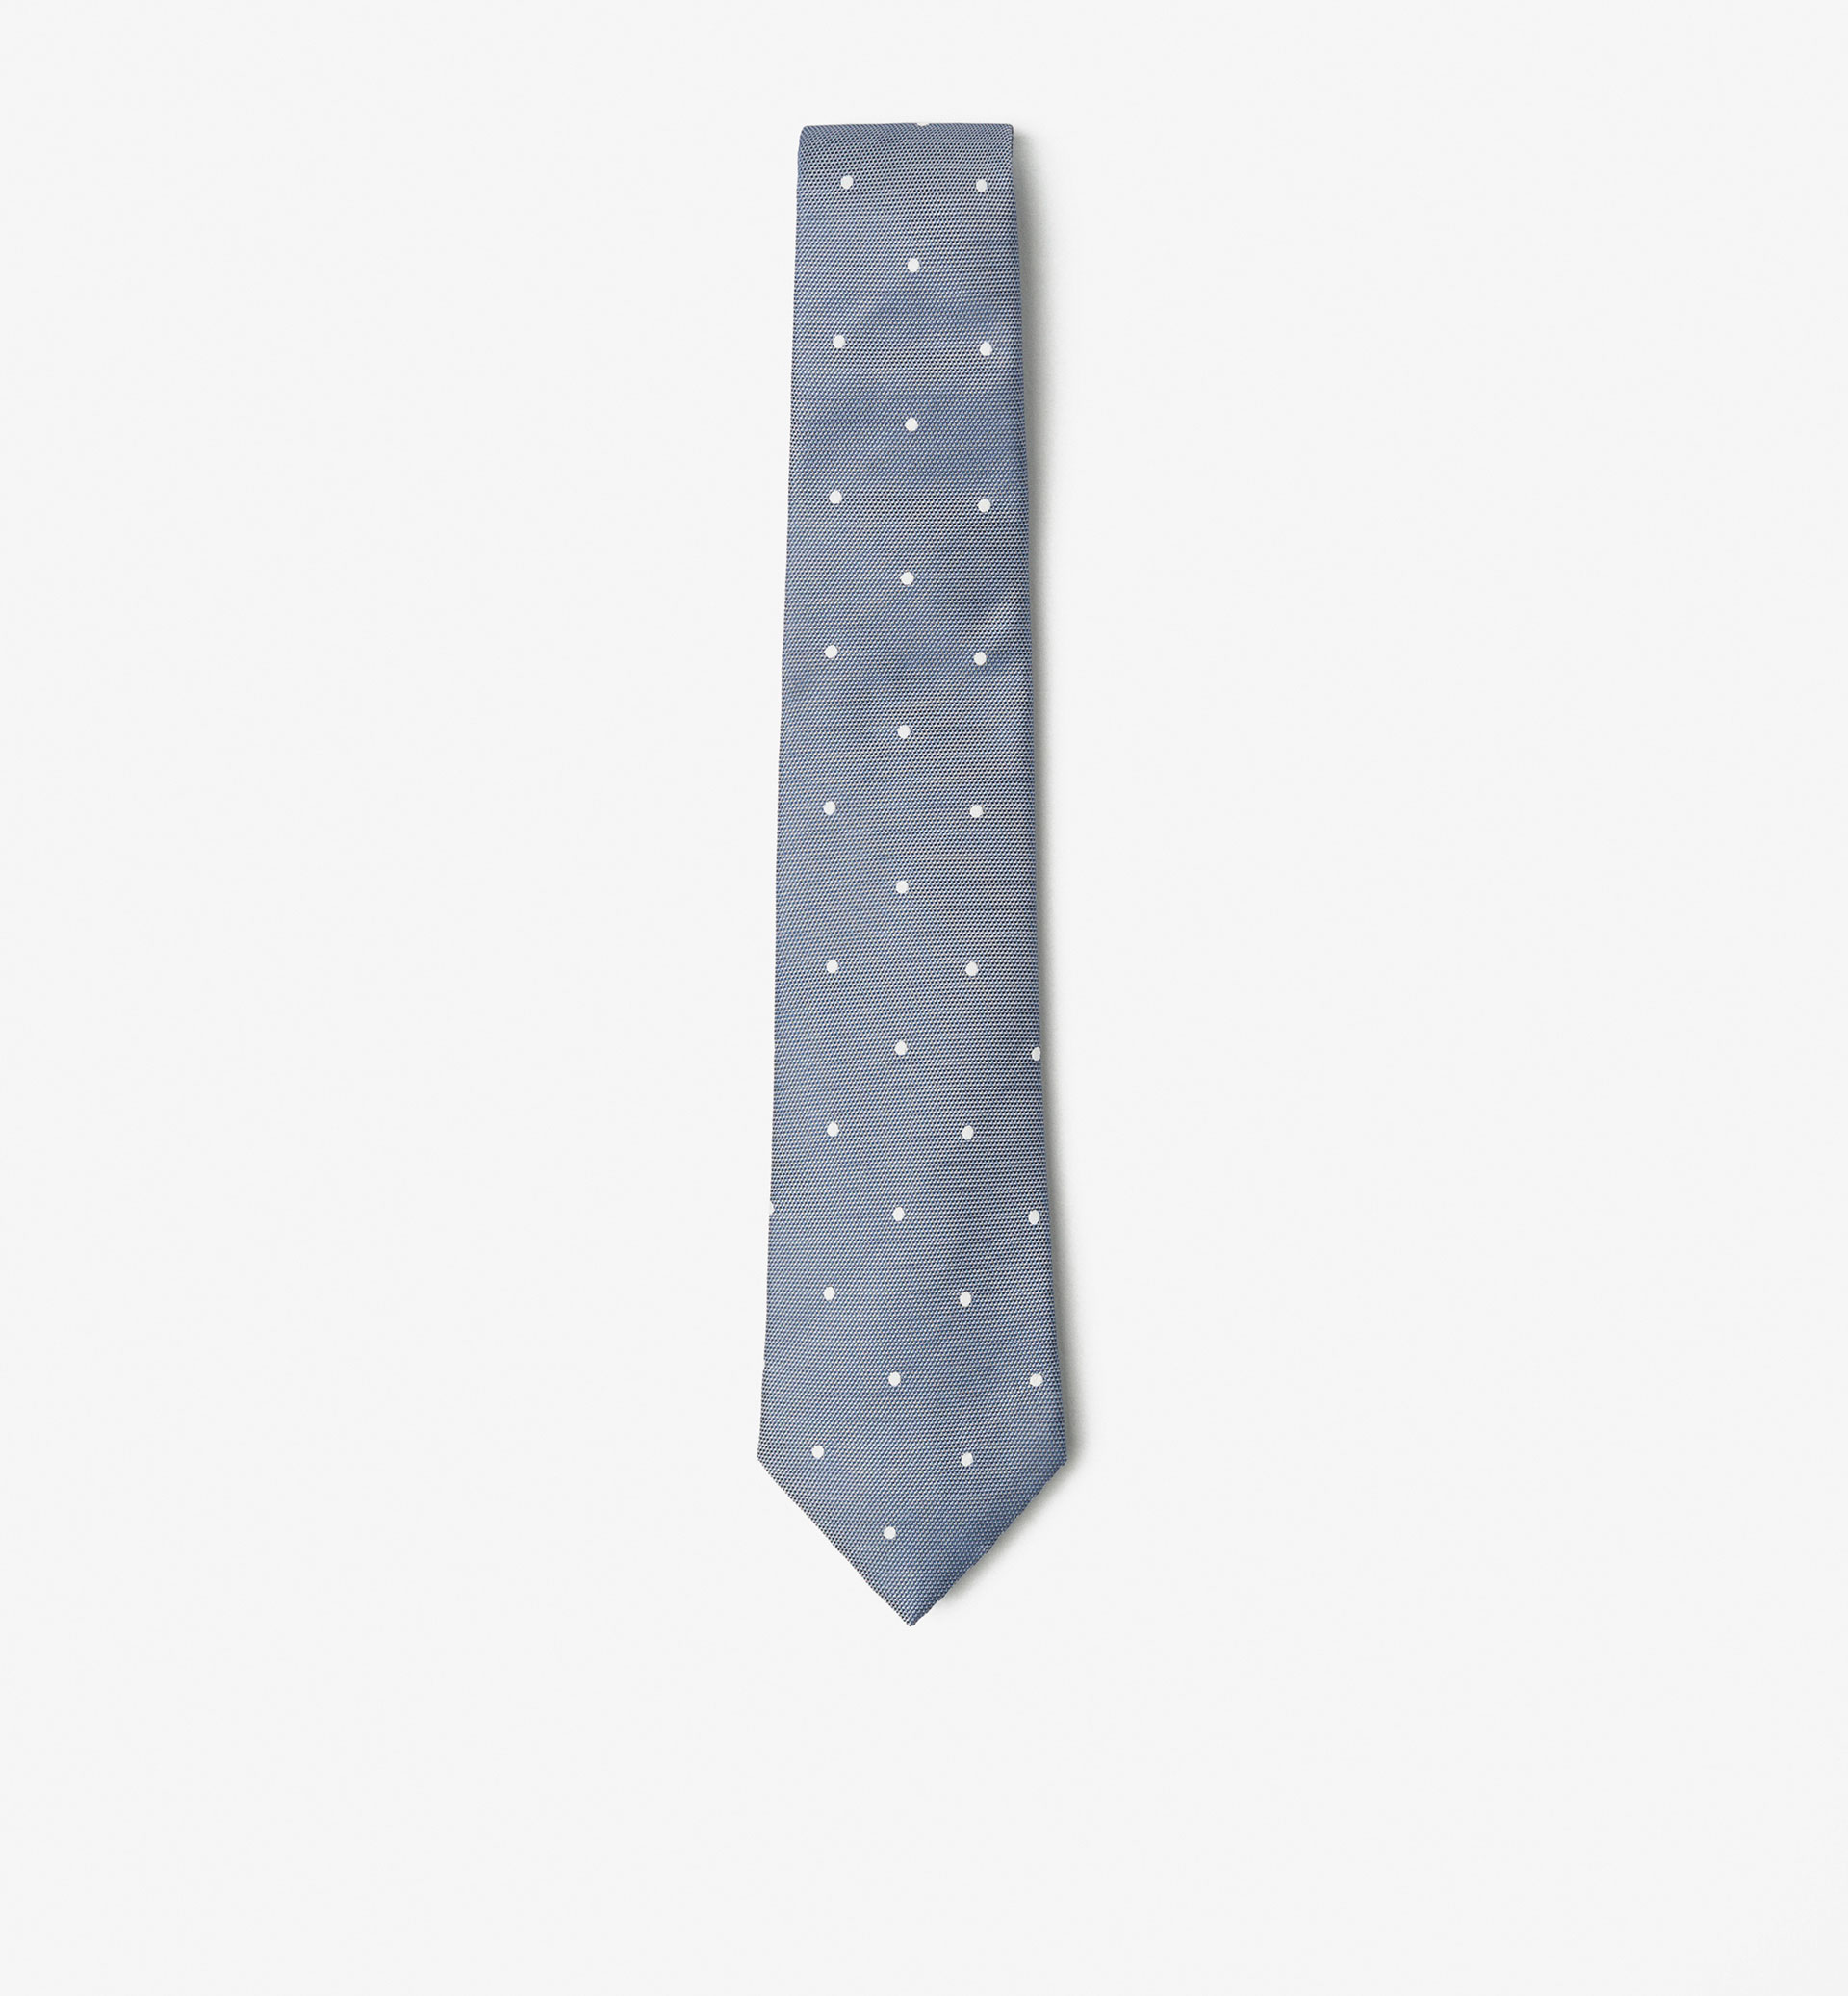 TIE WITH WHITE POLKA DOTS